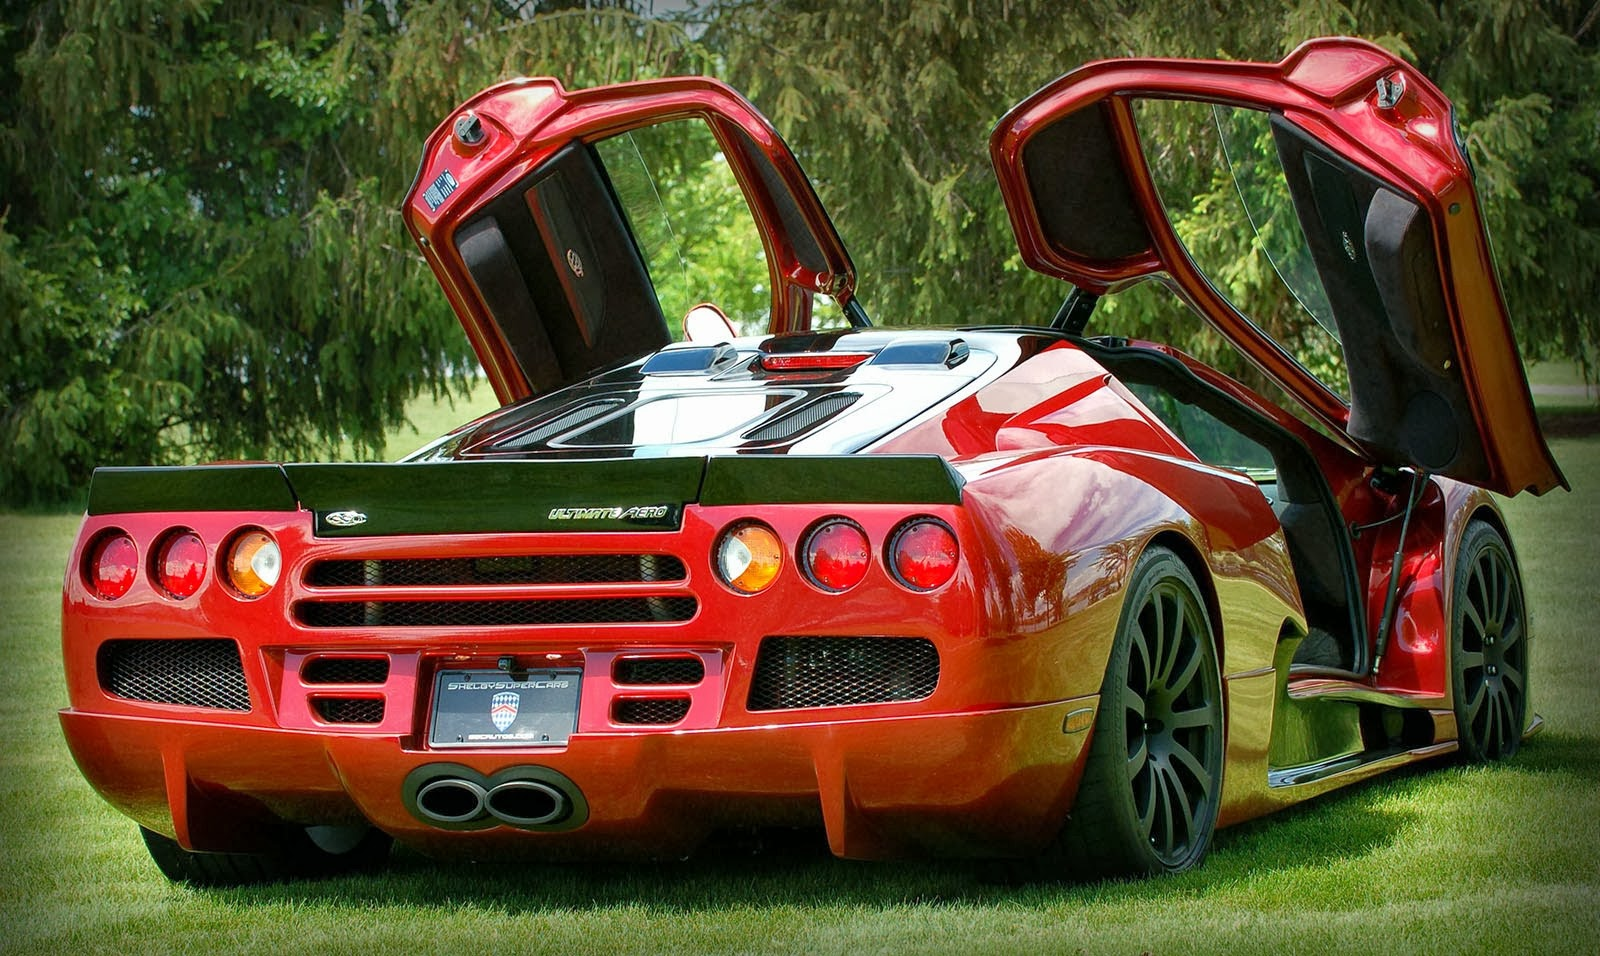 Ssc ultimate aero xt pricing our blog offers best hd ssc ultimate aero xt pricing wallpaper with high quality download for free car model ssc ultimate aero xt company ssc sciox Image collections